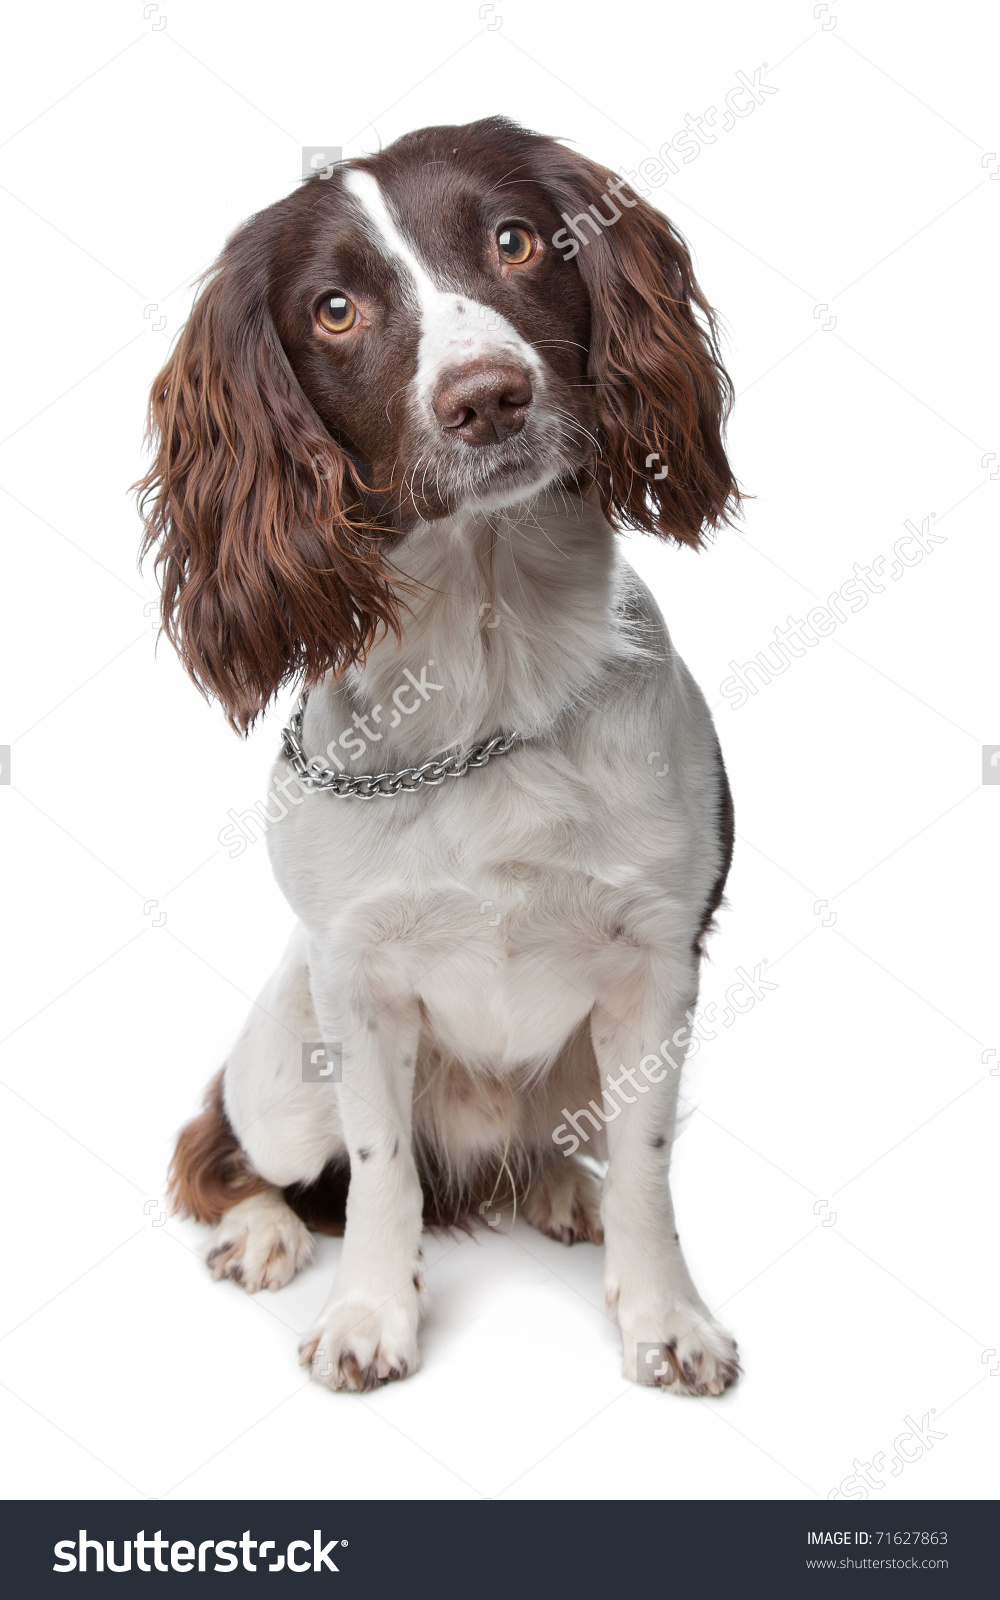 Springer Spaniel clipart #4, Download drawings